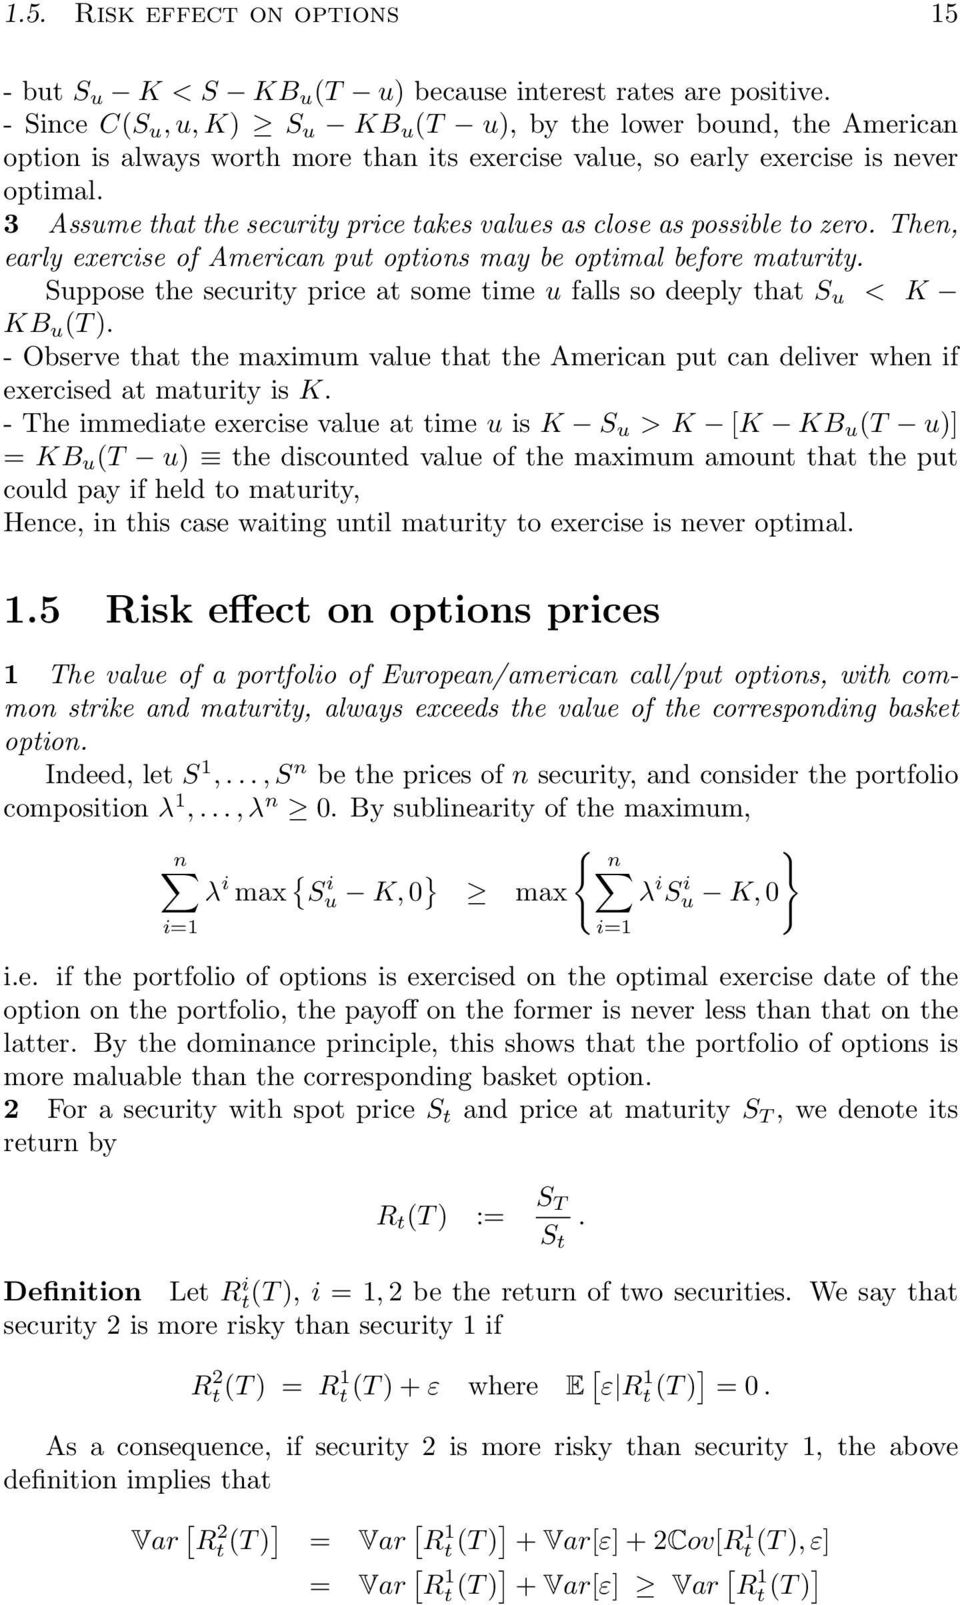 3 Assume that the security price takes values as close as possible to zero. Then, early exercise of American put options may be optimal before maturity.